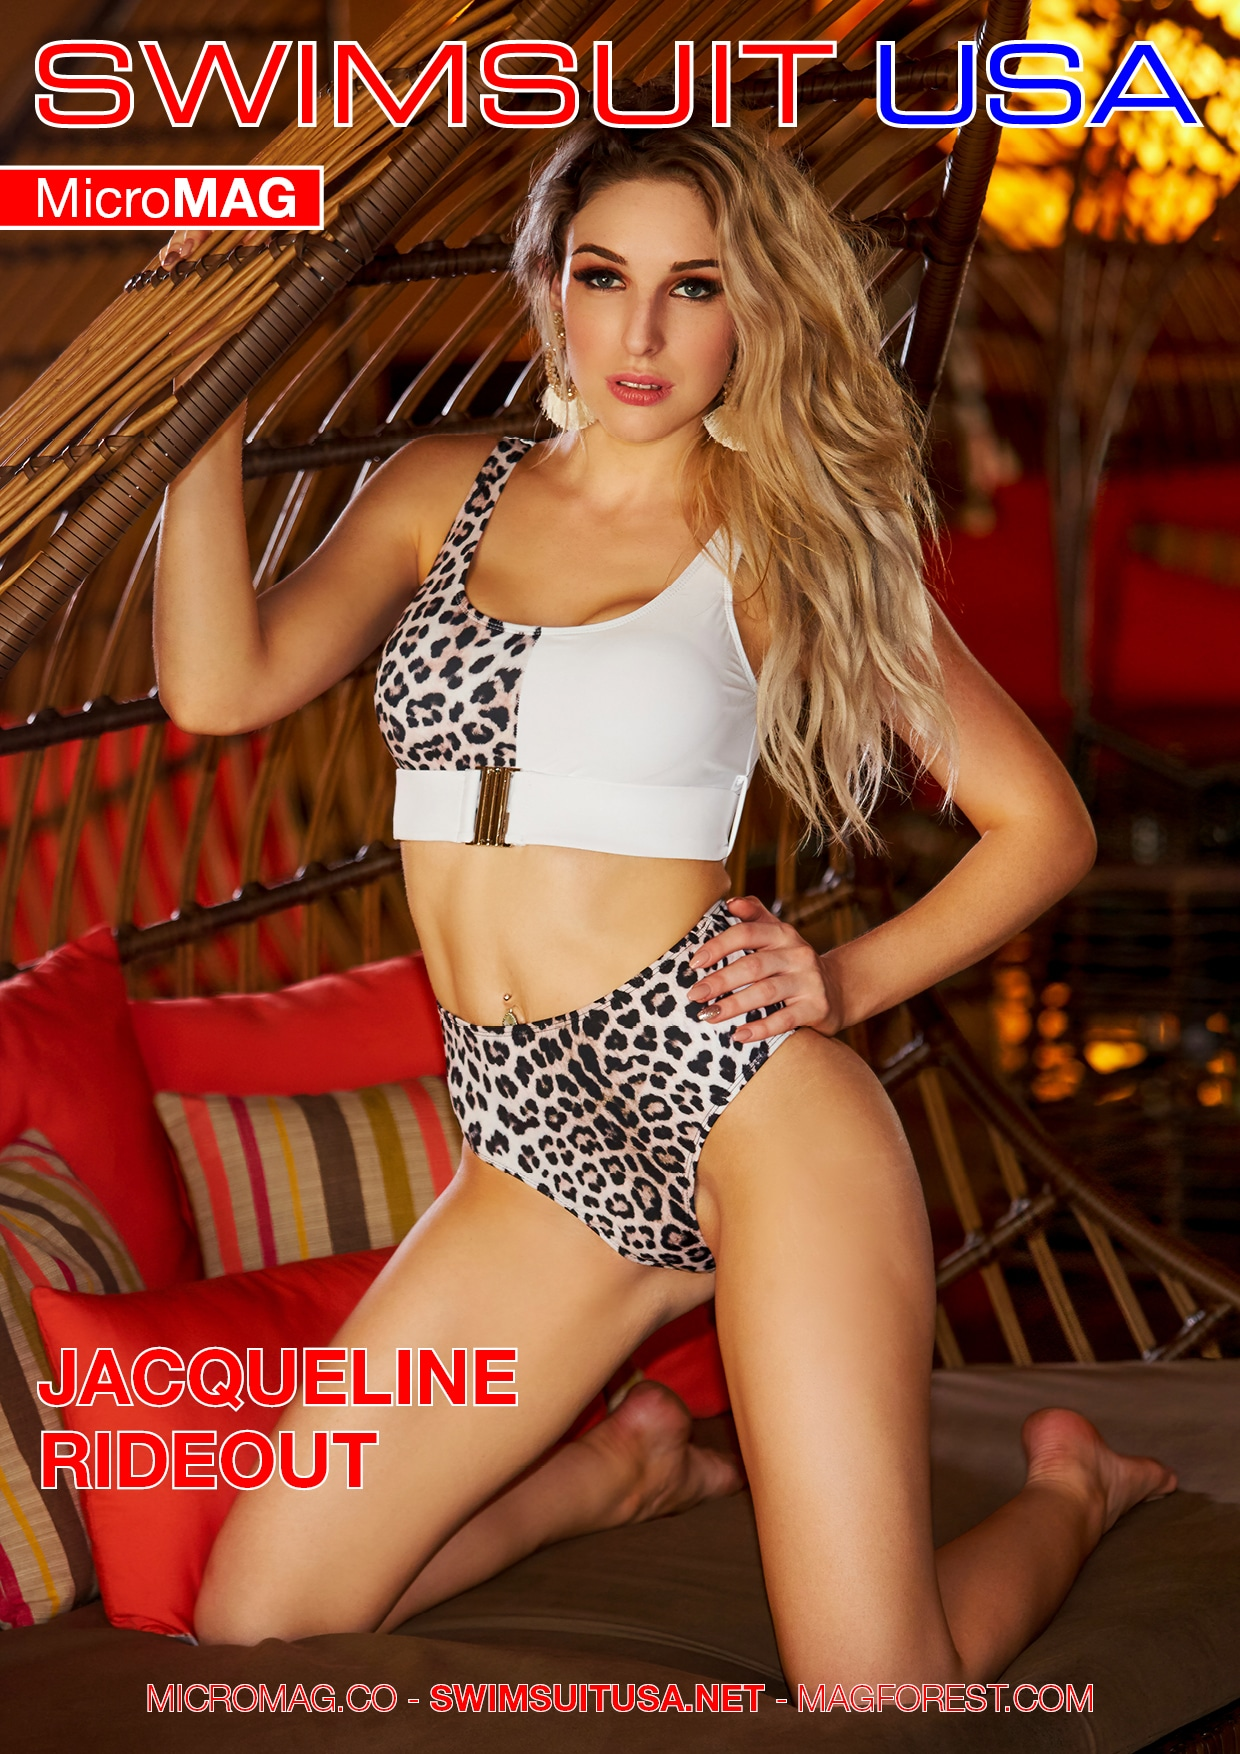 Swimsuit USA MicroMAG - Jacqueline Rideout - Issue 5 3